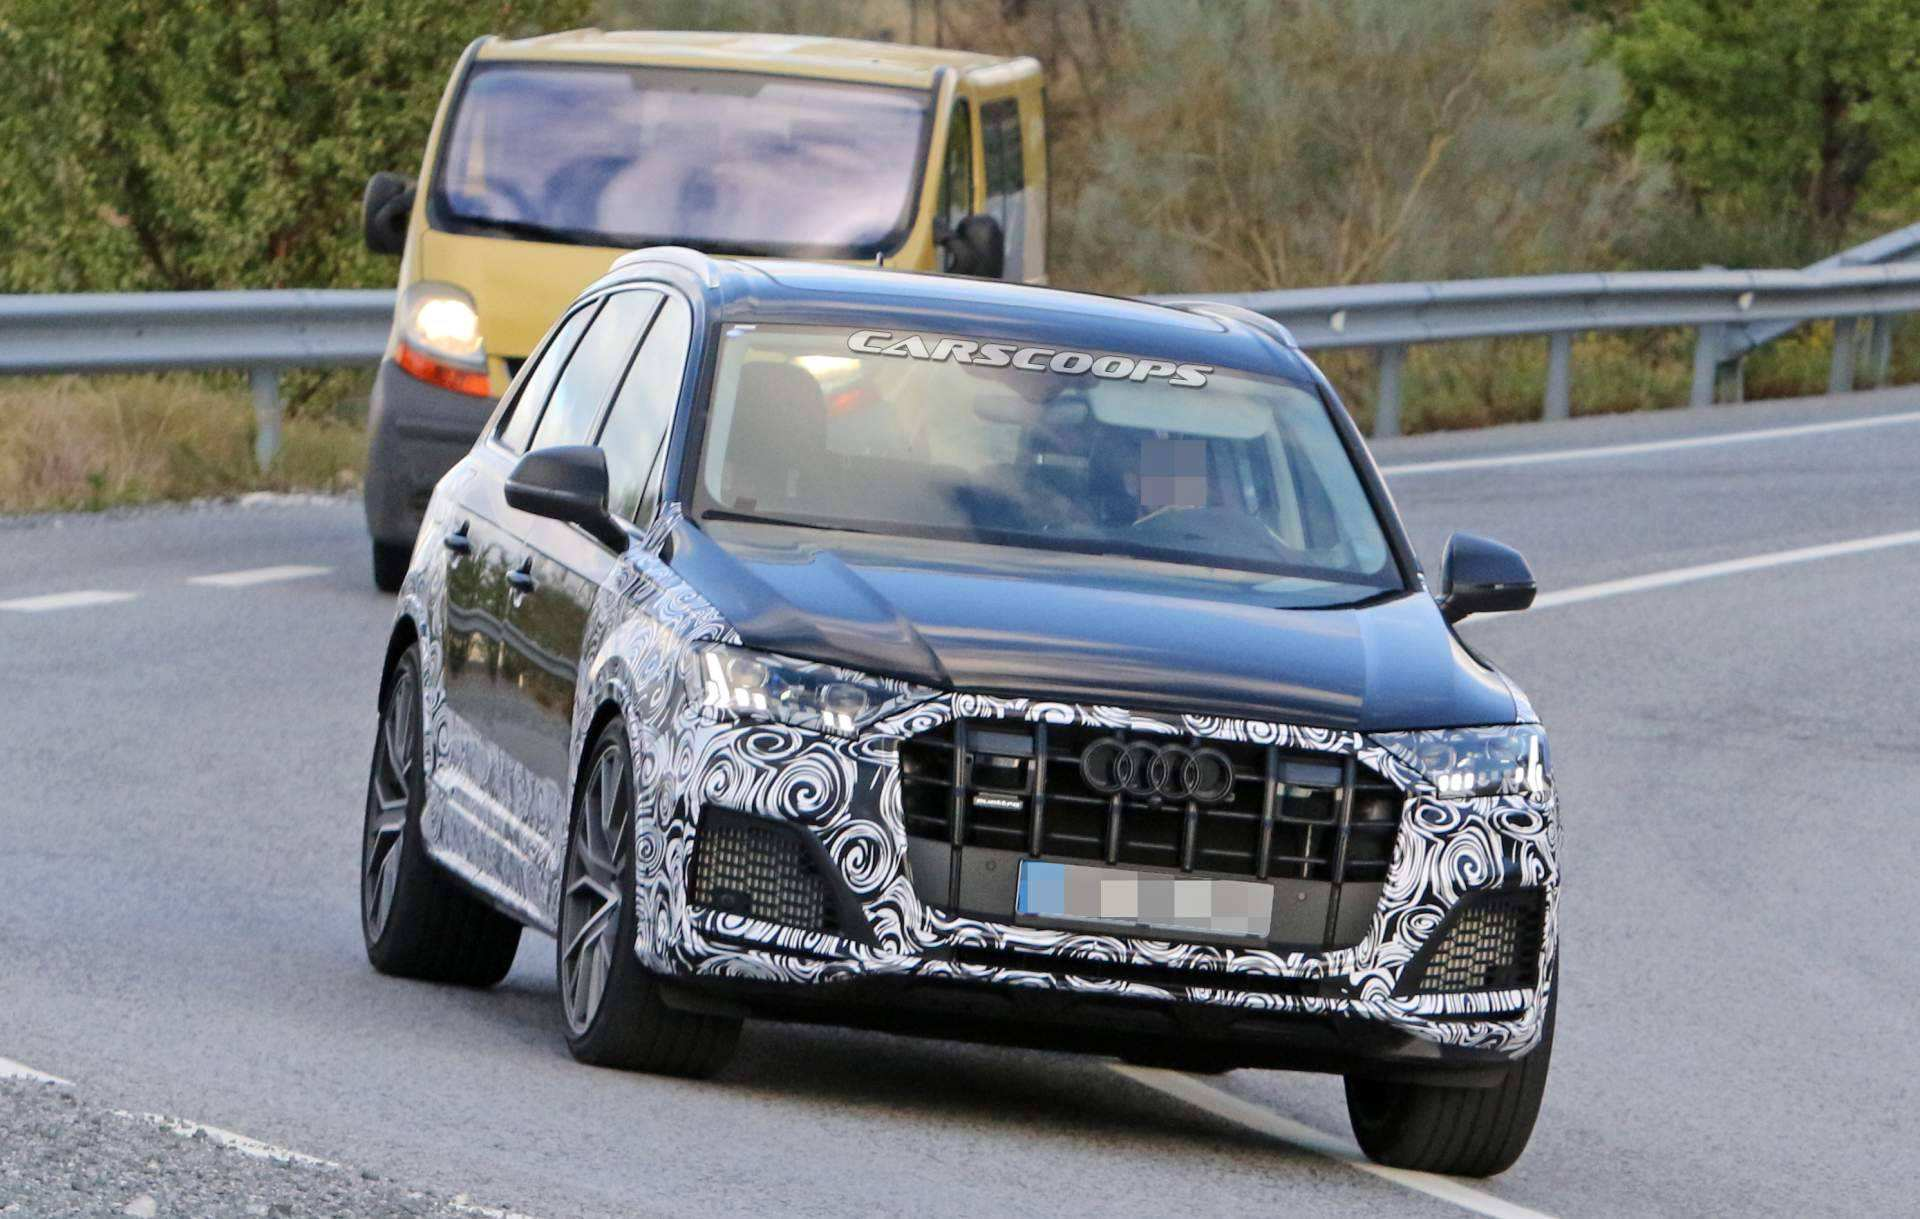 52 Best Review When Does 2020 Audi Q7 Come Out Prices with When Does 2020 Audi Q7 Come Out